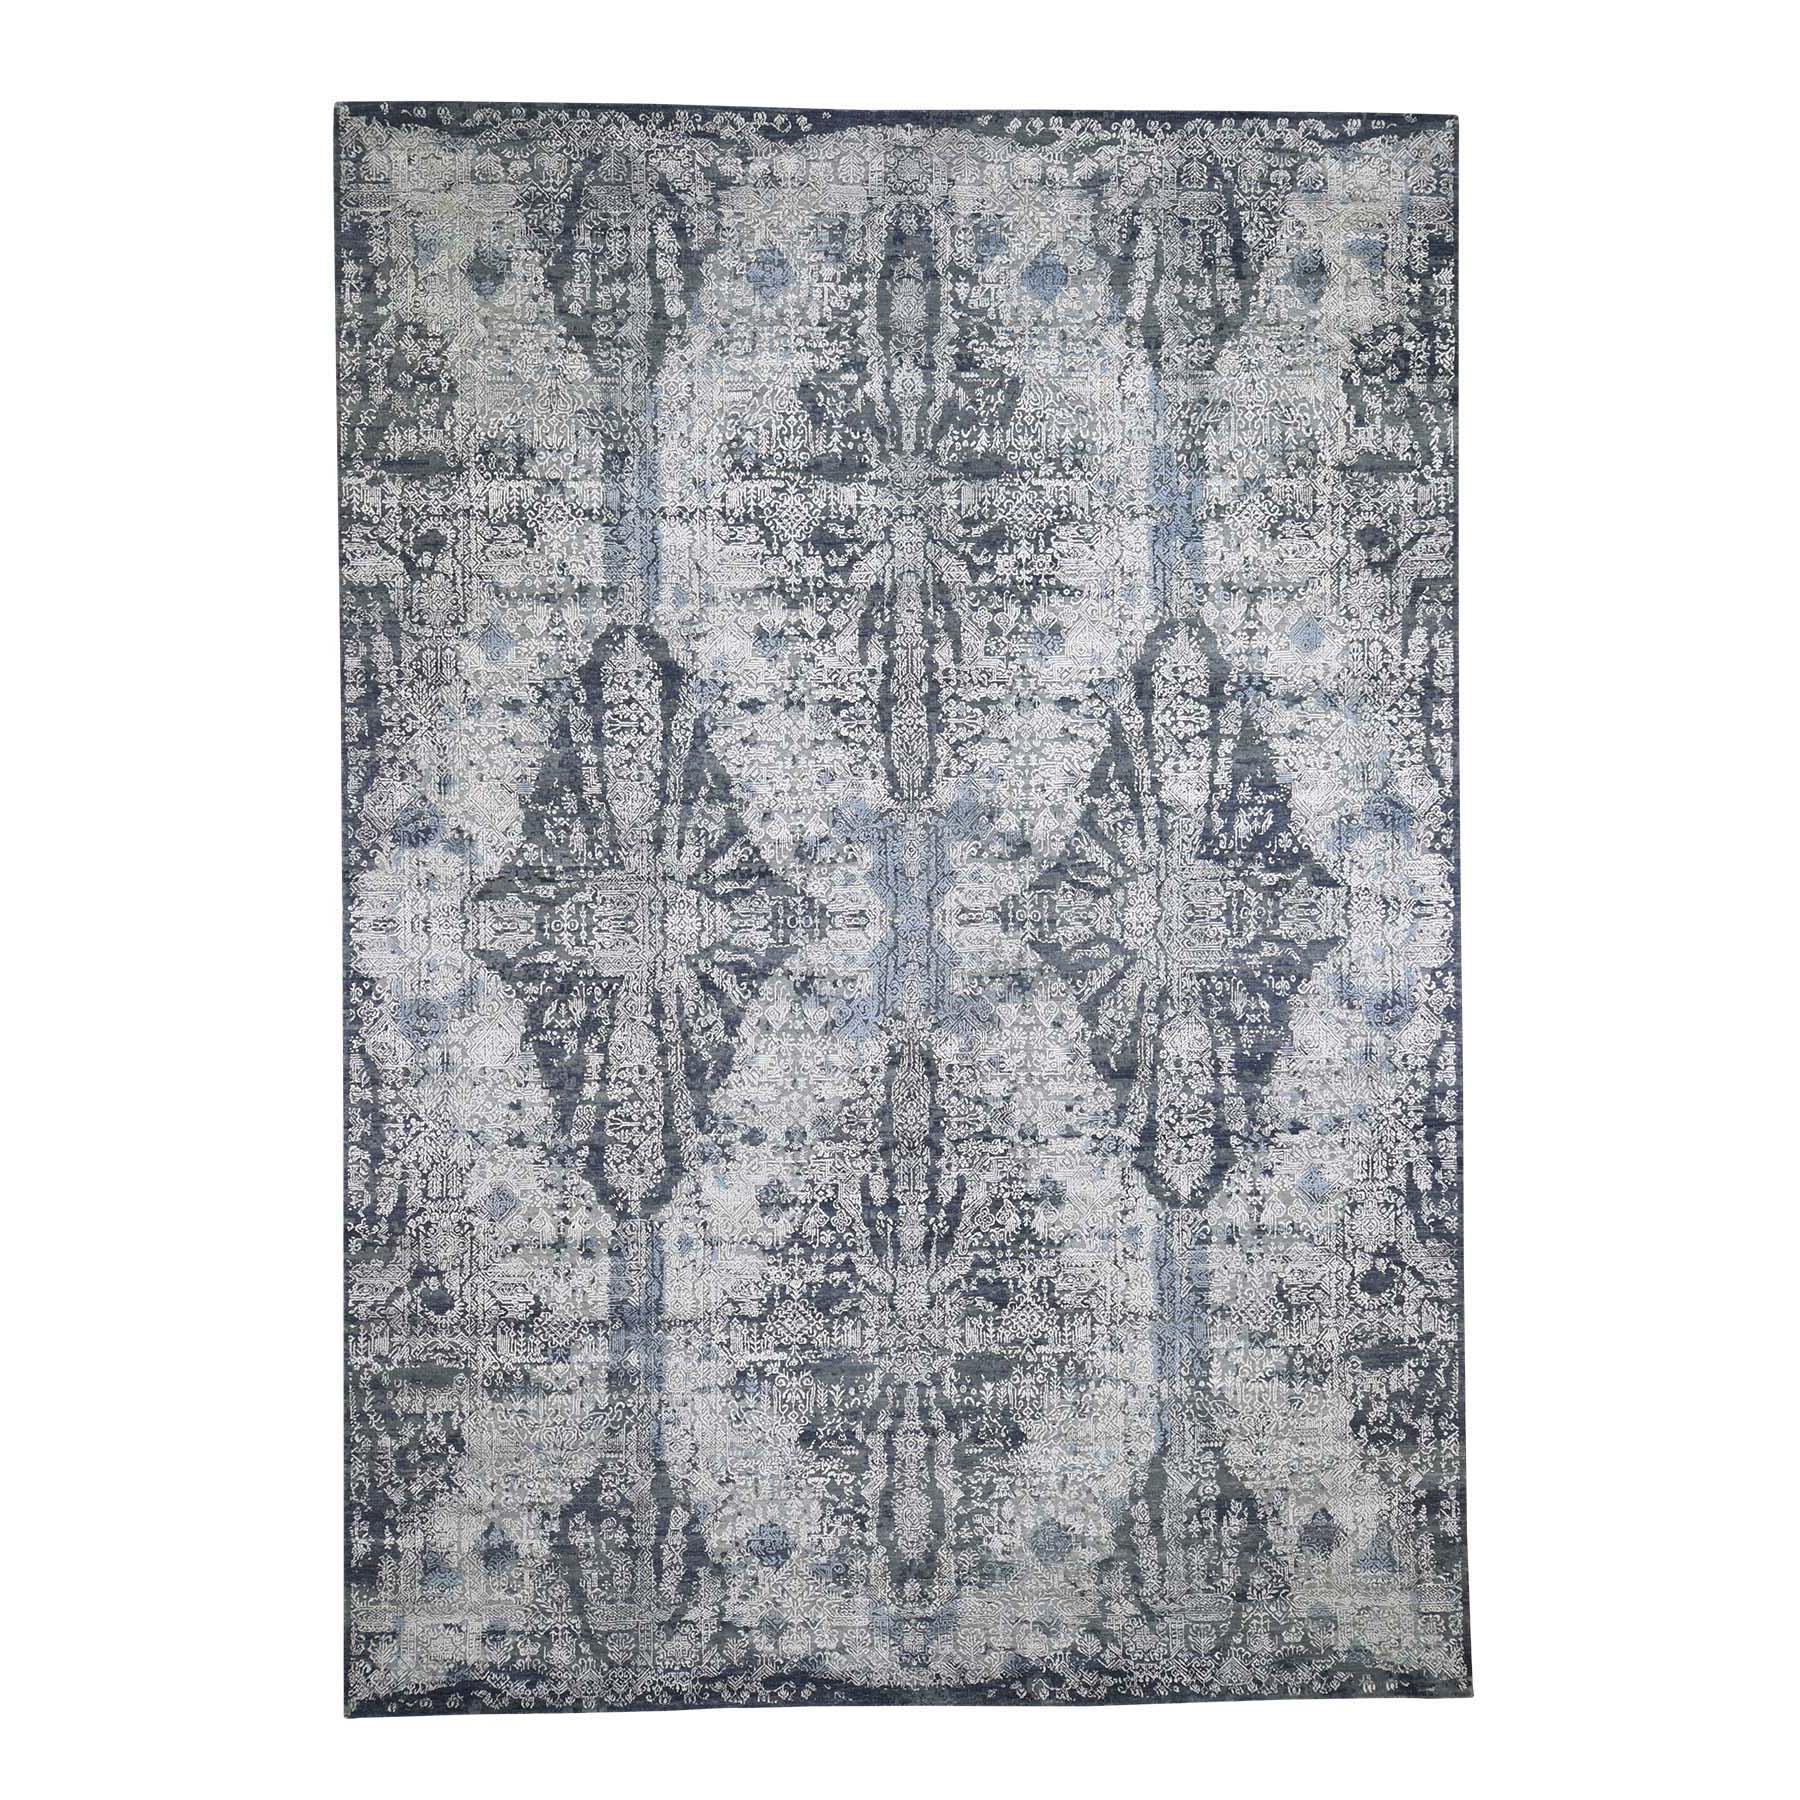 10'x14' Jewellery Design Tone On Tone Half Wool And Half Silk Hand-Knotted Oriental Rug